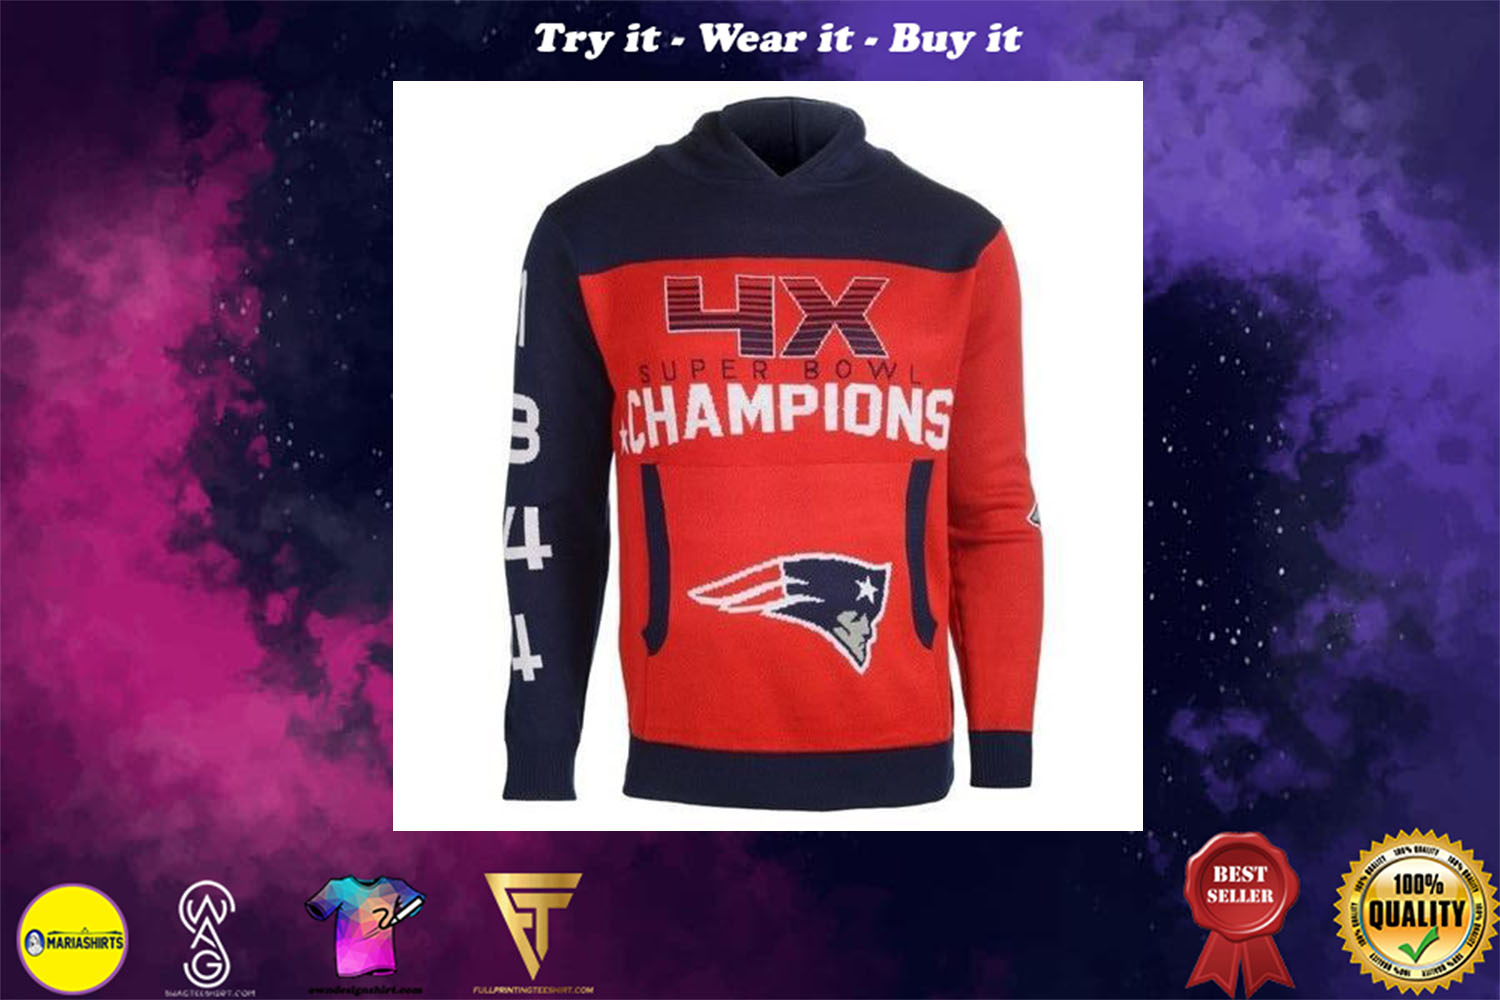 [special edition] the new england patriots super bowl champions full over print shirt - maria